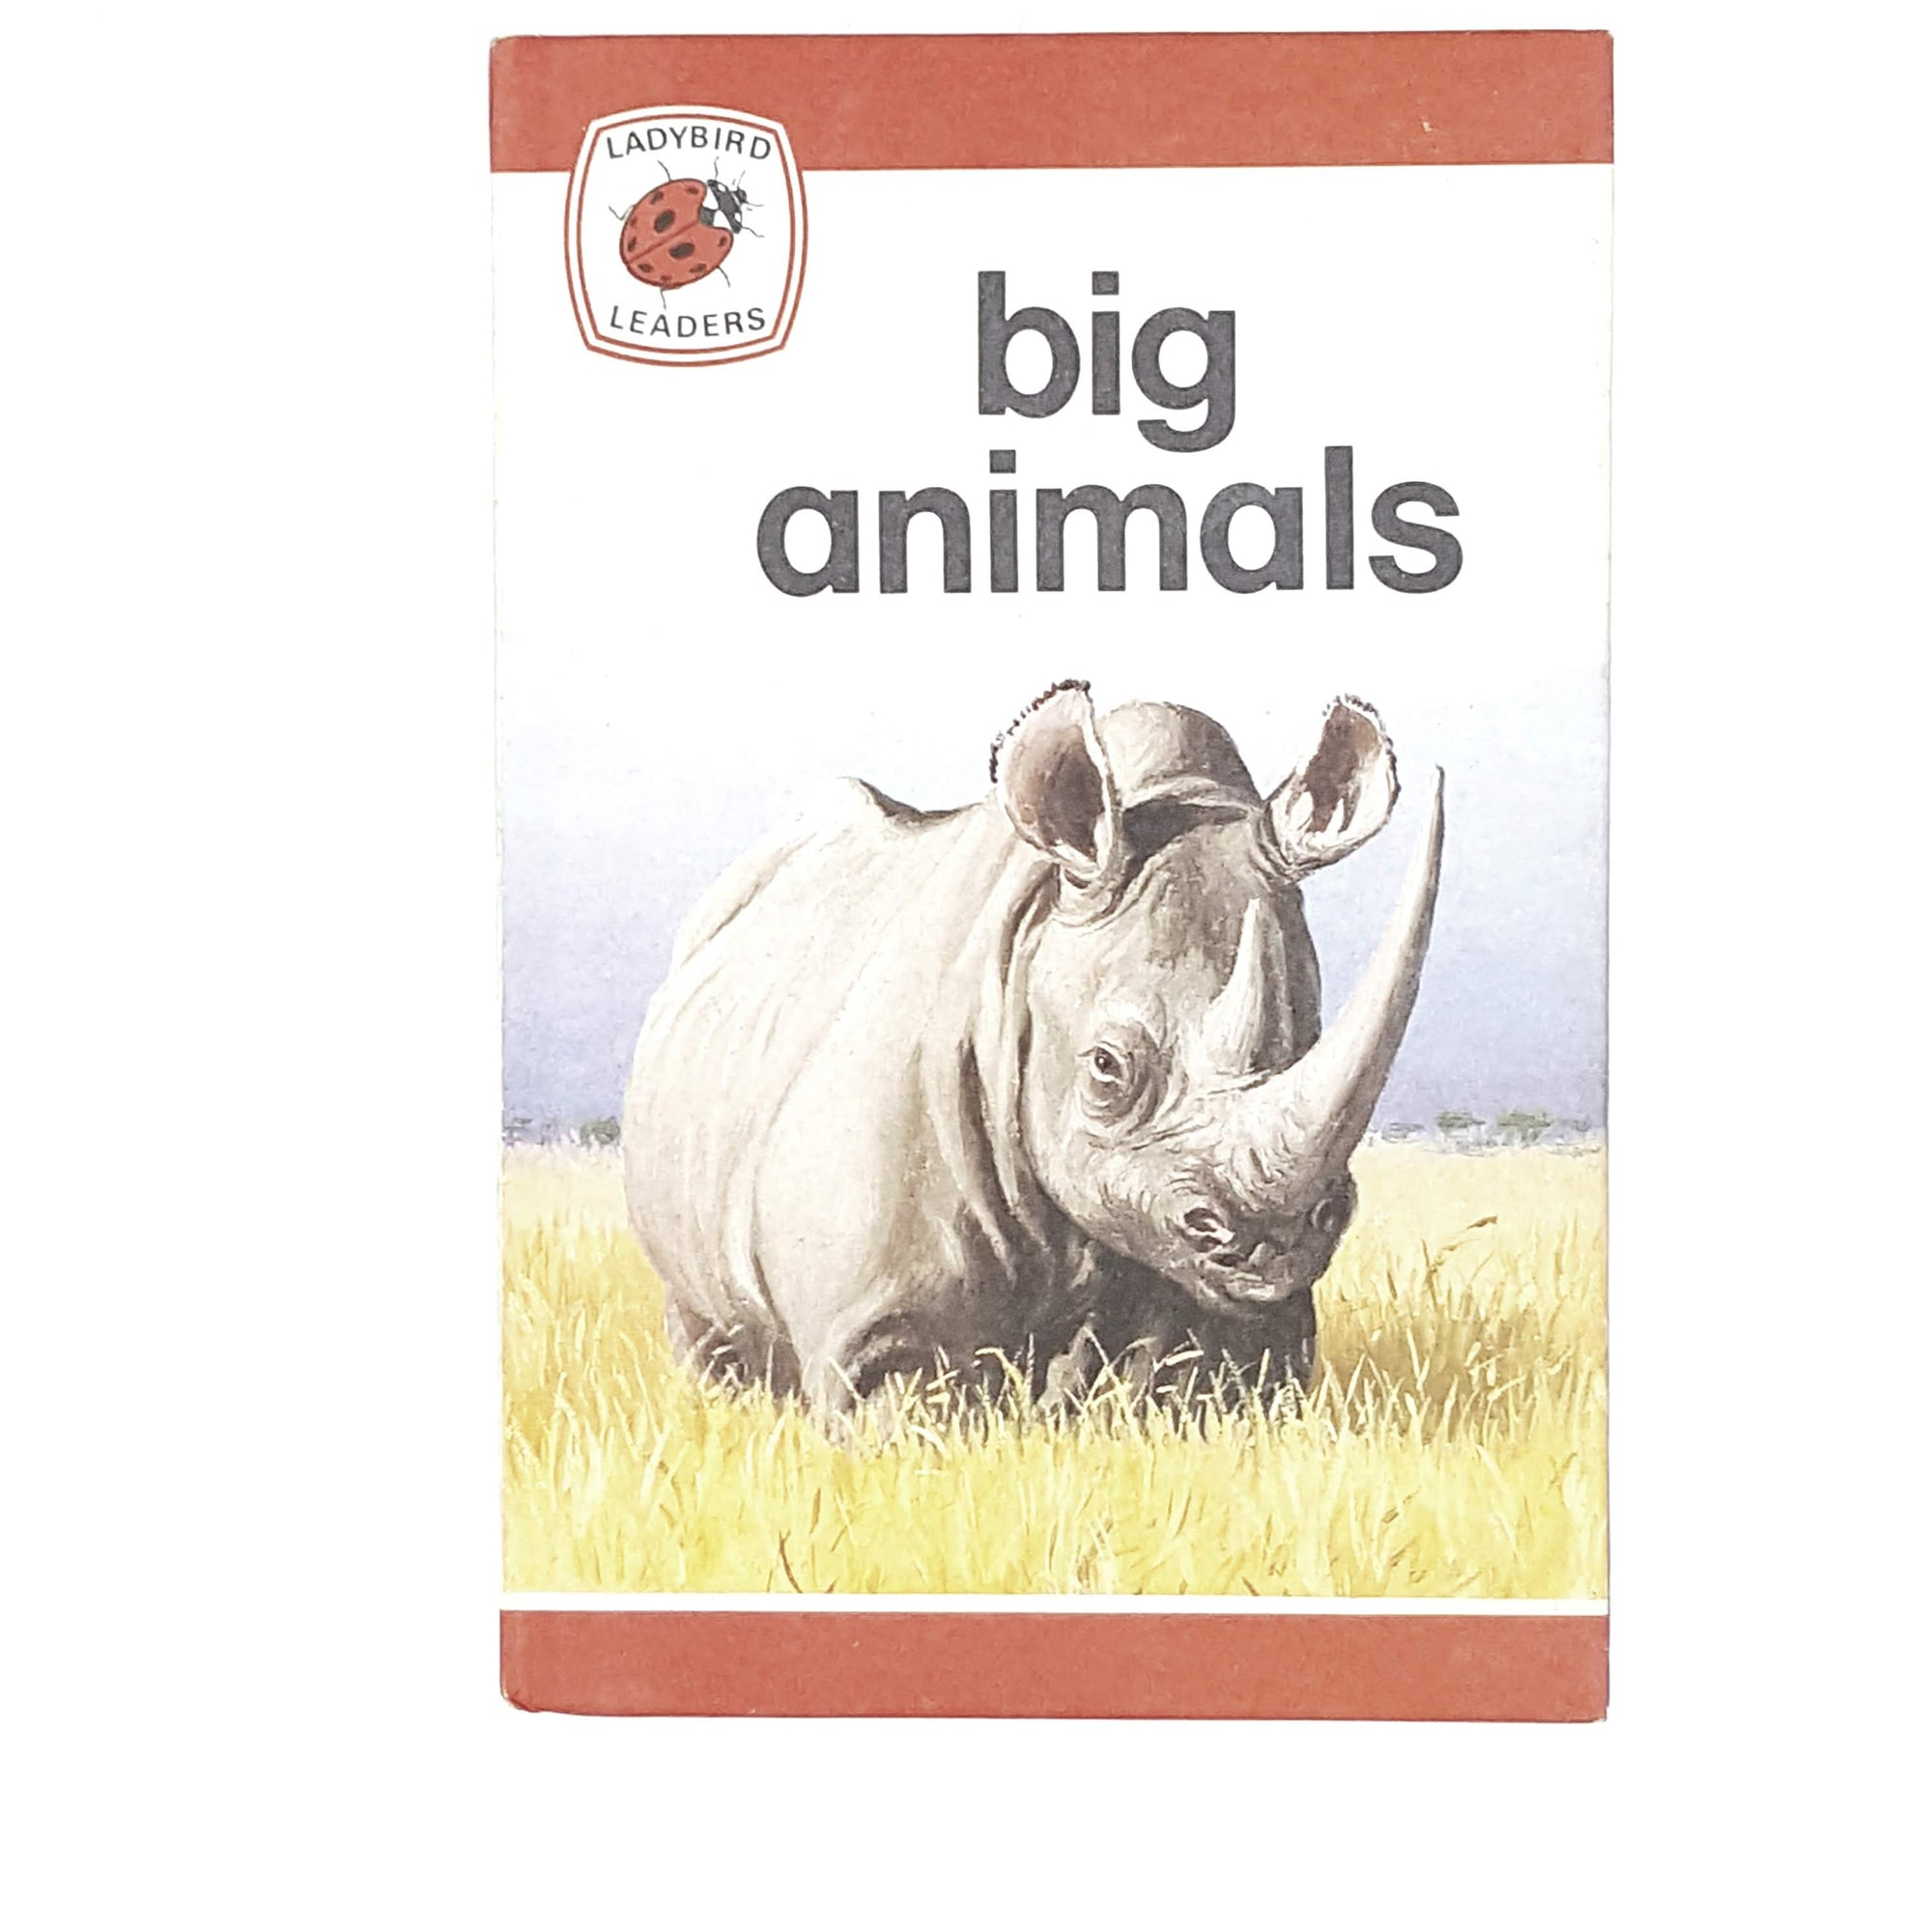 ladybird-leaders-big-animals-1975-country-house-library